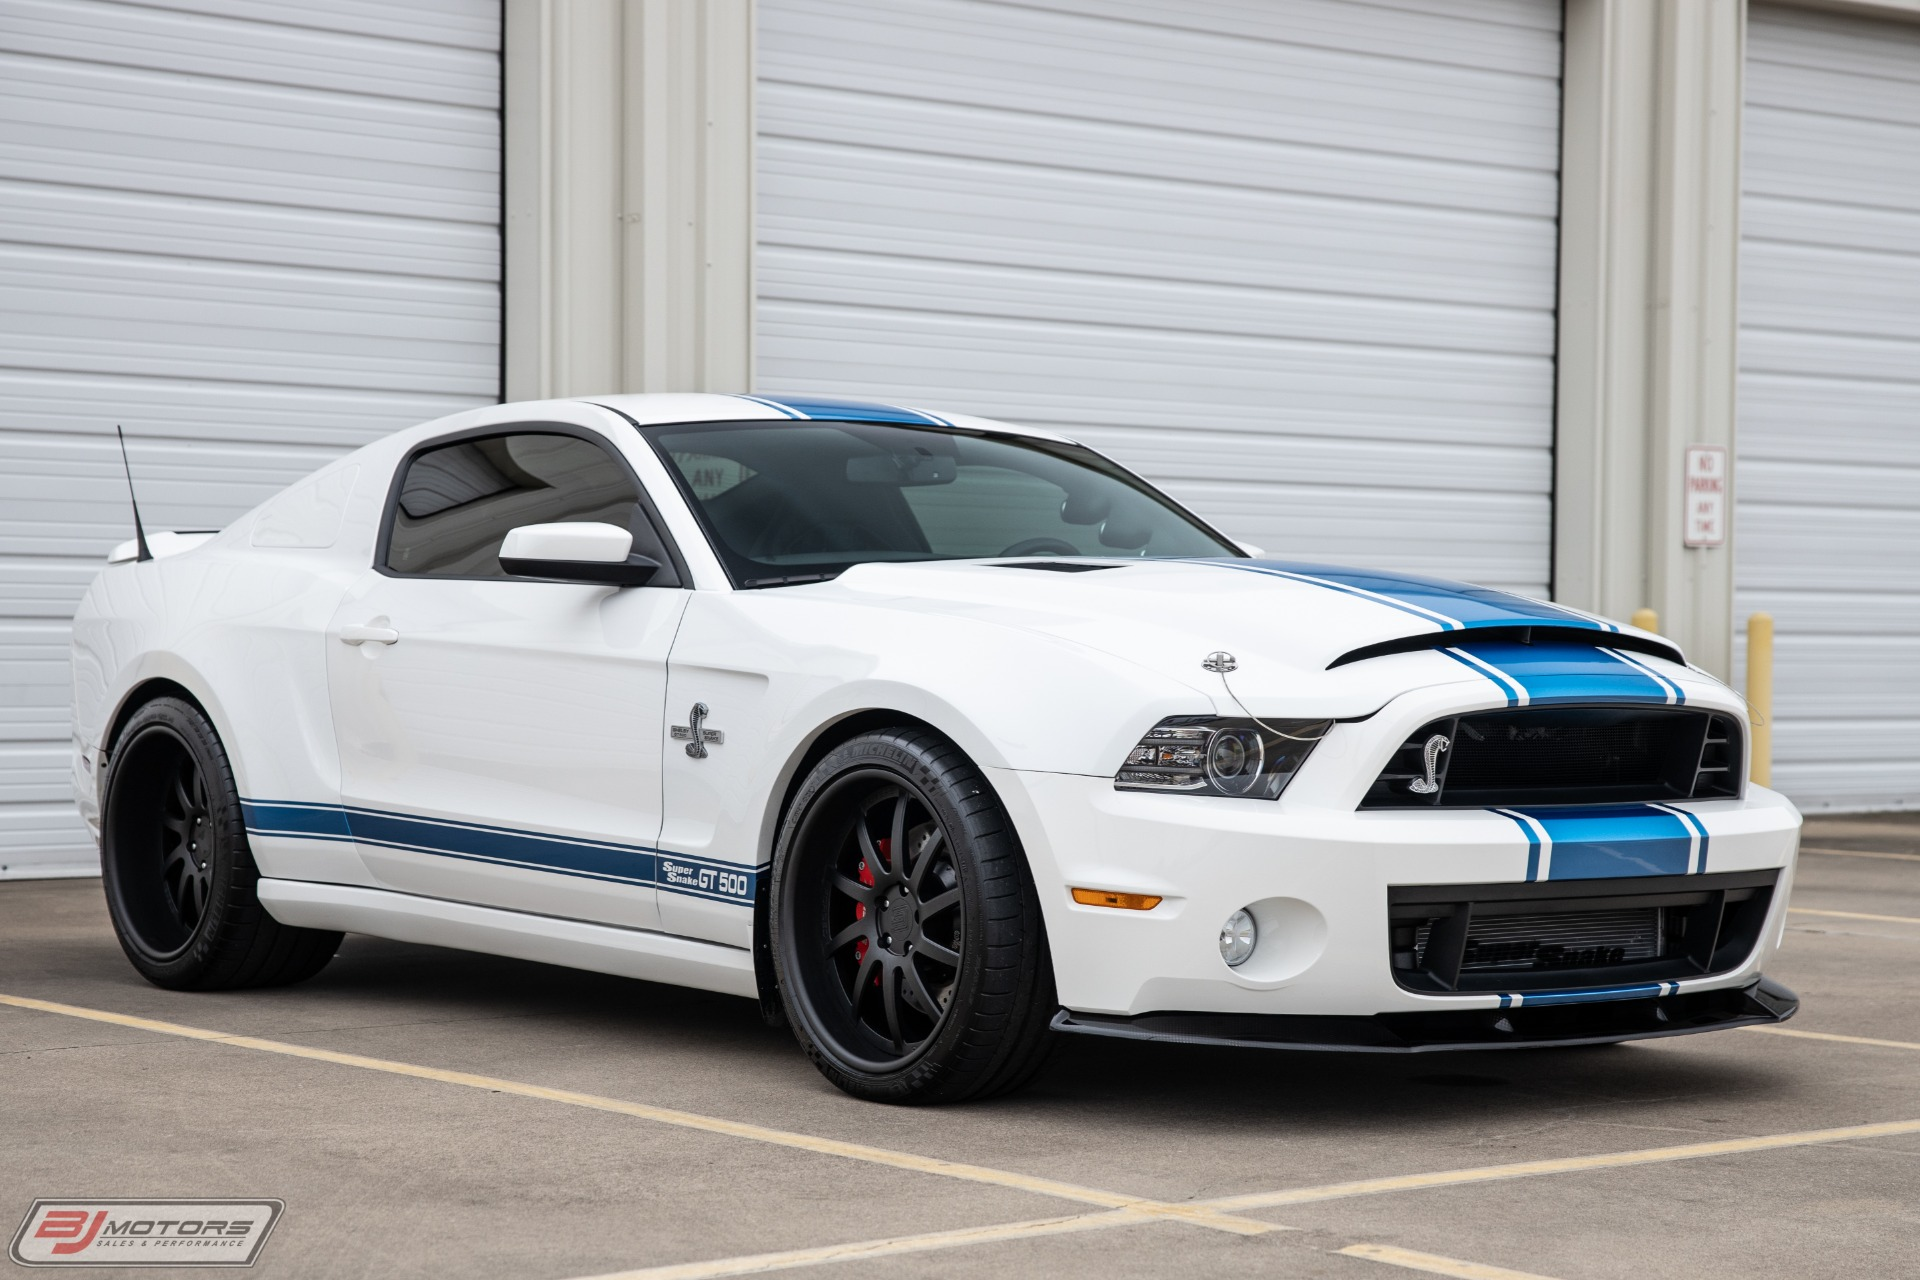 Used-2013-Ford-Mustang-Shelby-GT500-Super-Snake